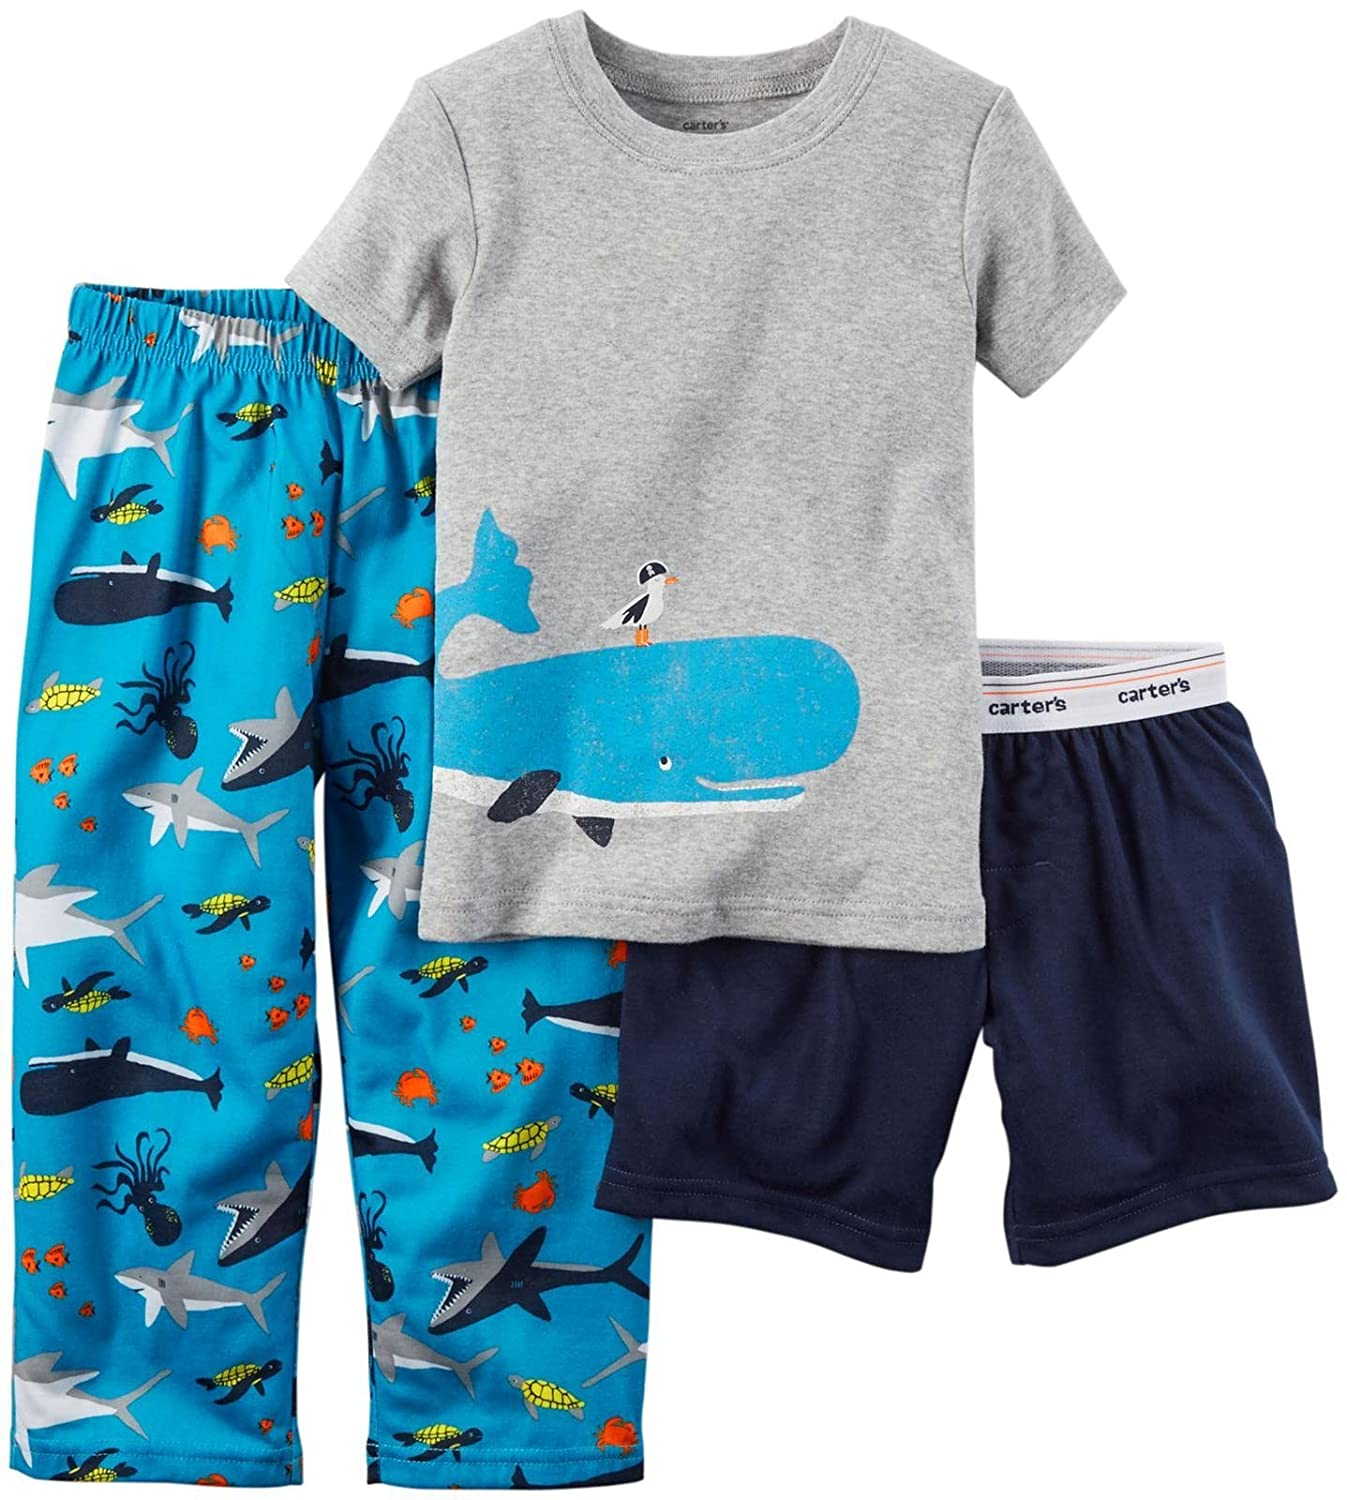 Carters Baby Boys 4 Piece Pj Set 321g077 f0G7T9V9